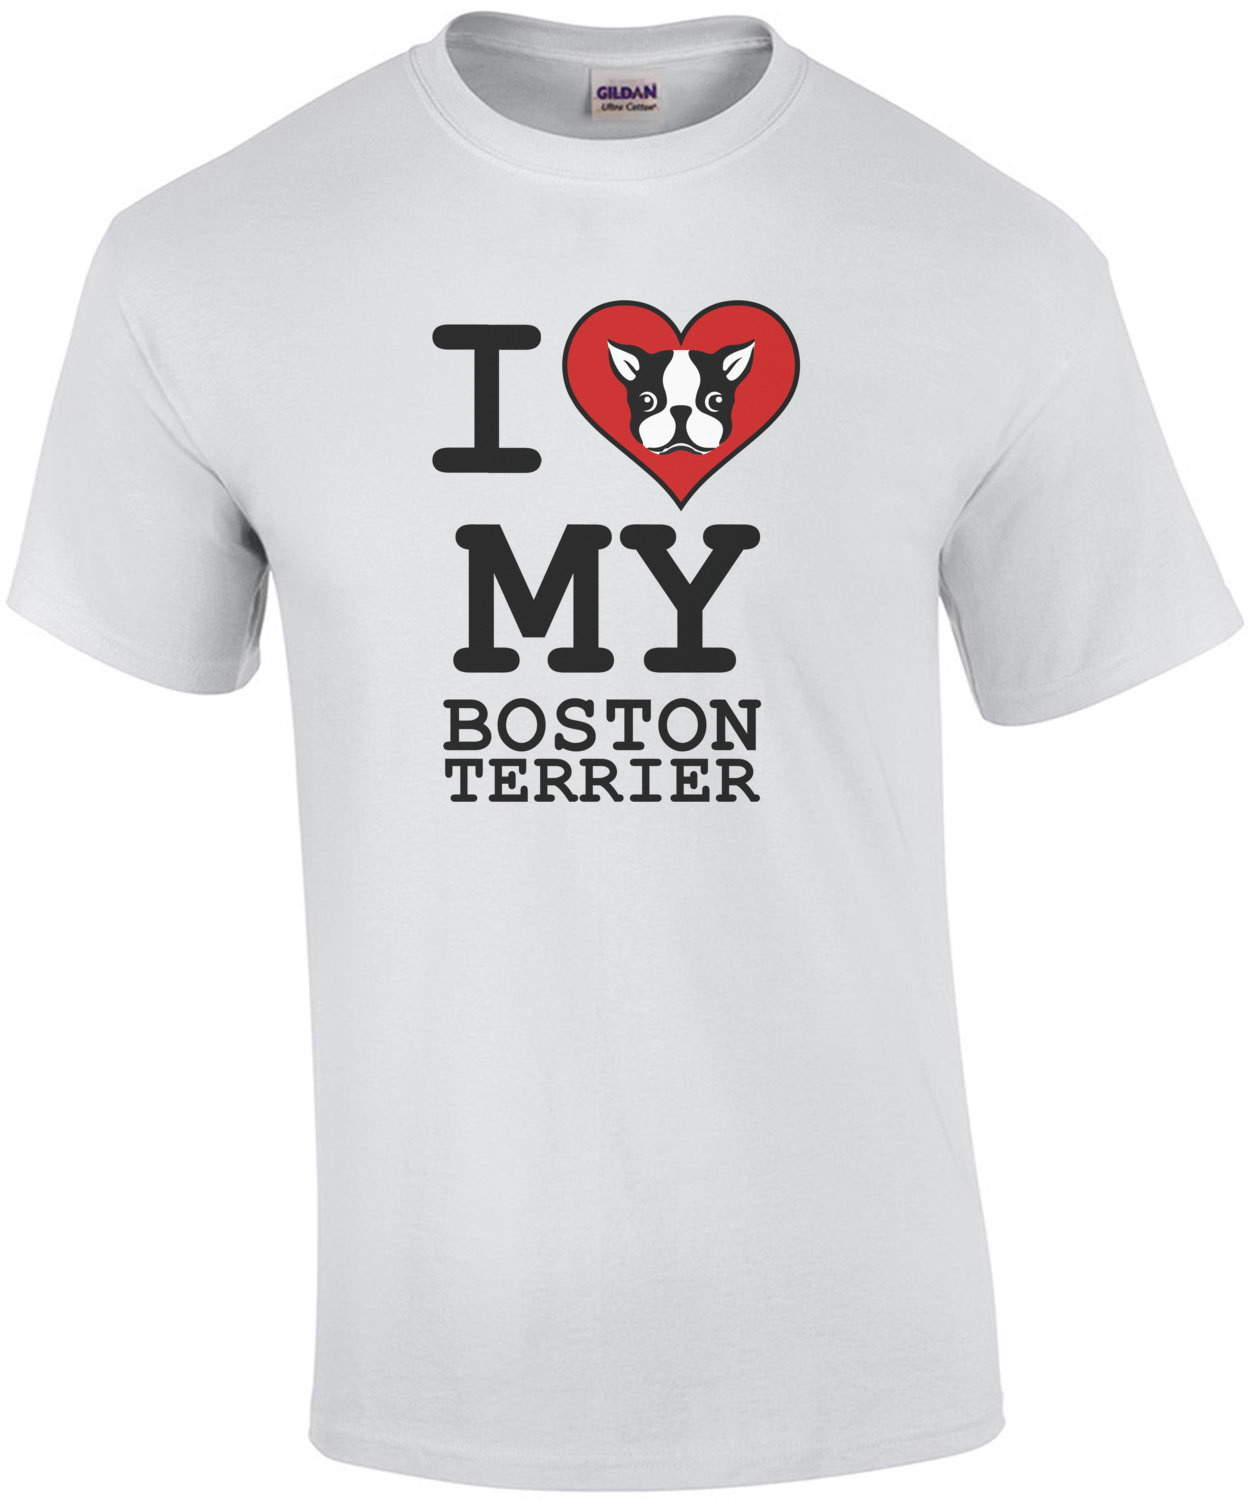 I love my boston terrier - boston terrier t-shirt